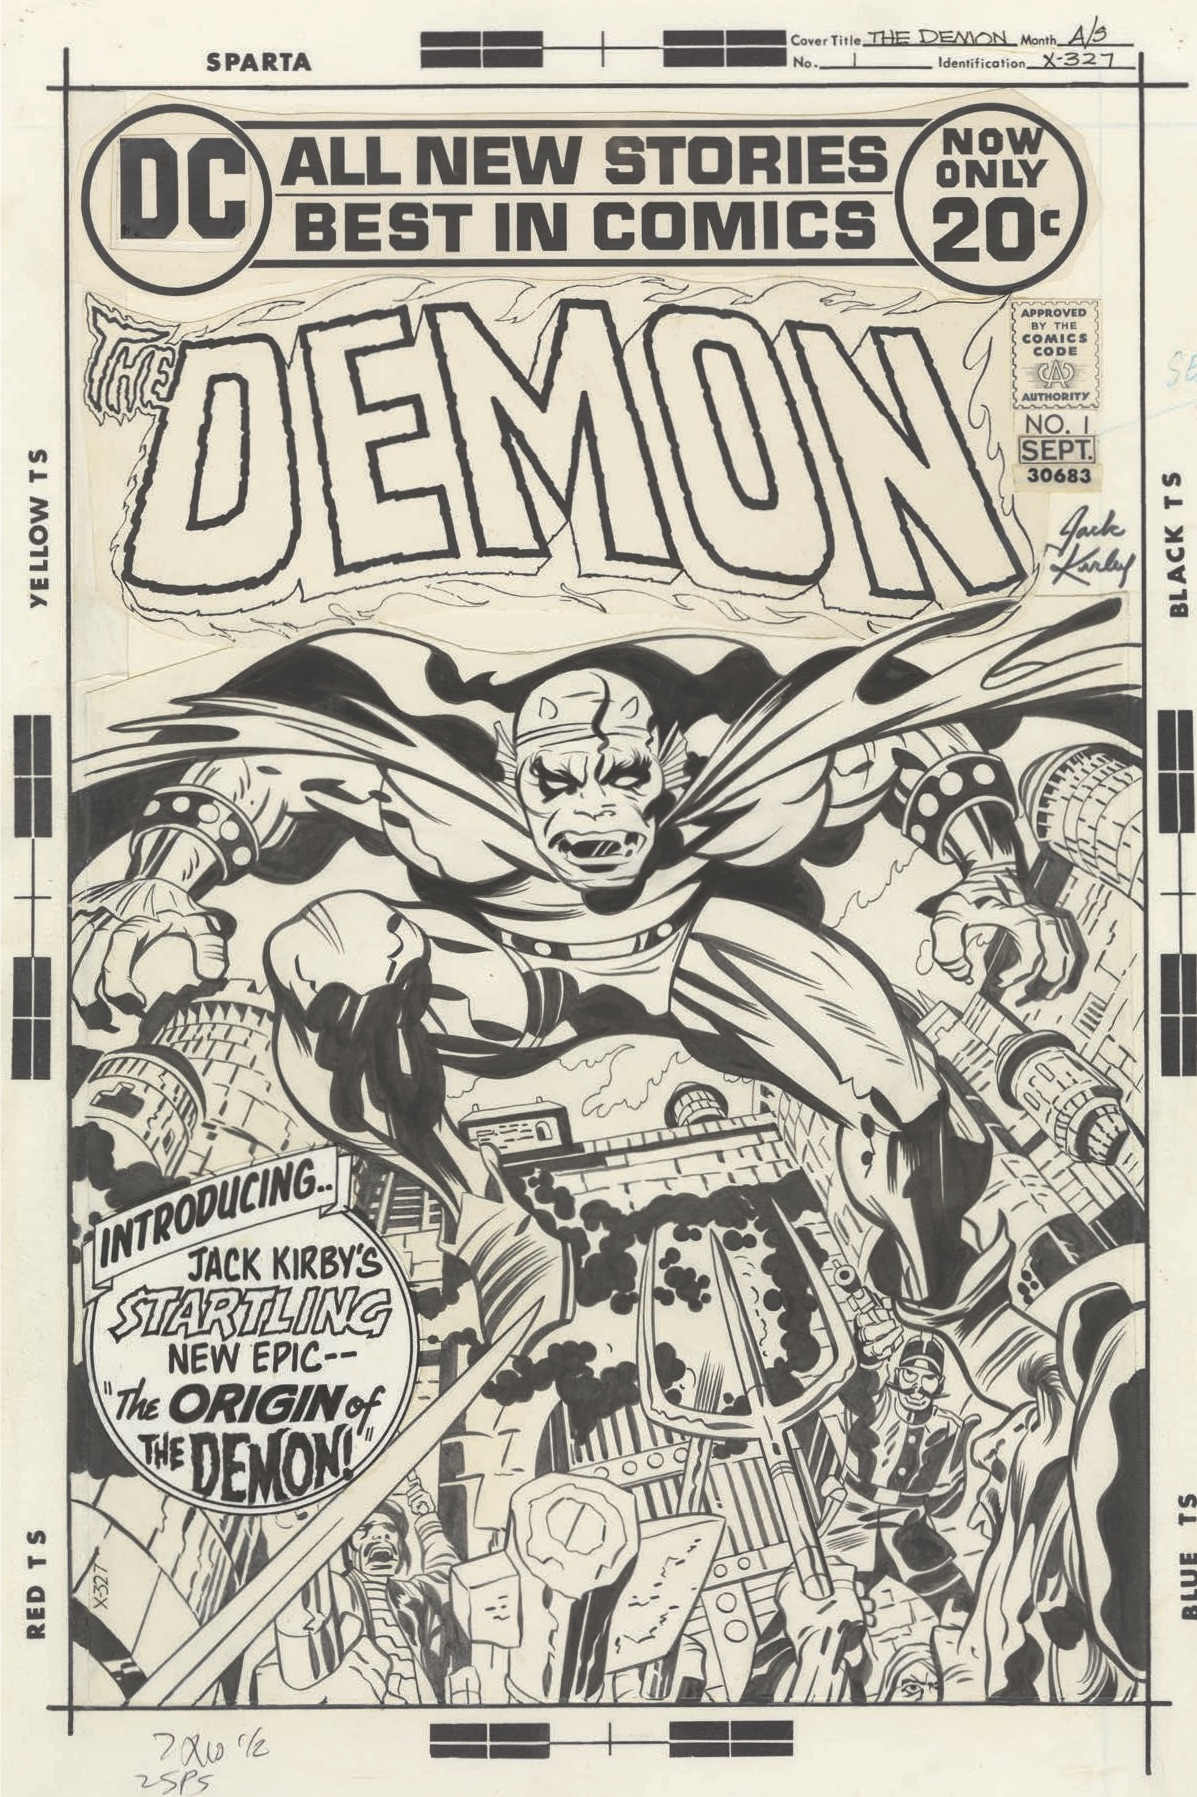 jackkirby_pencils_inks-lodemon1ink